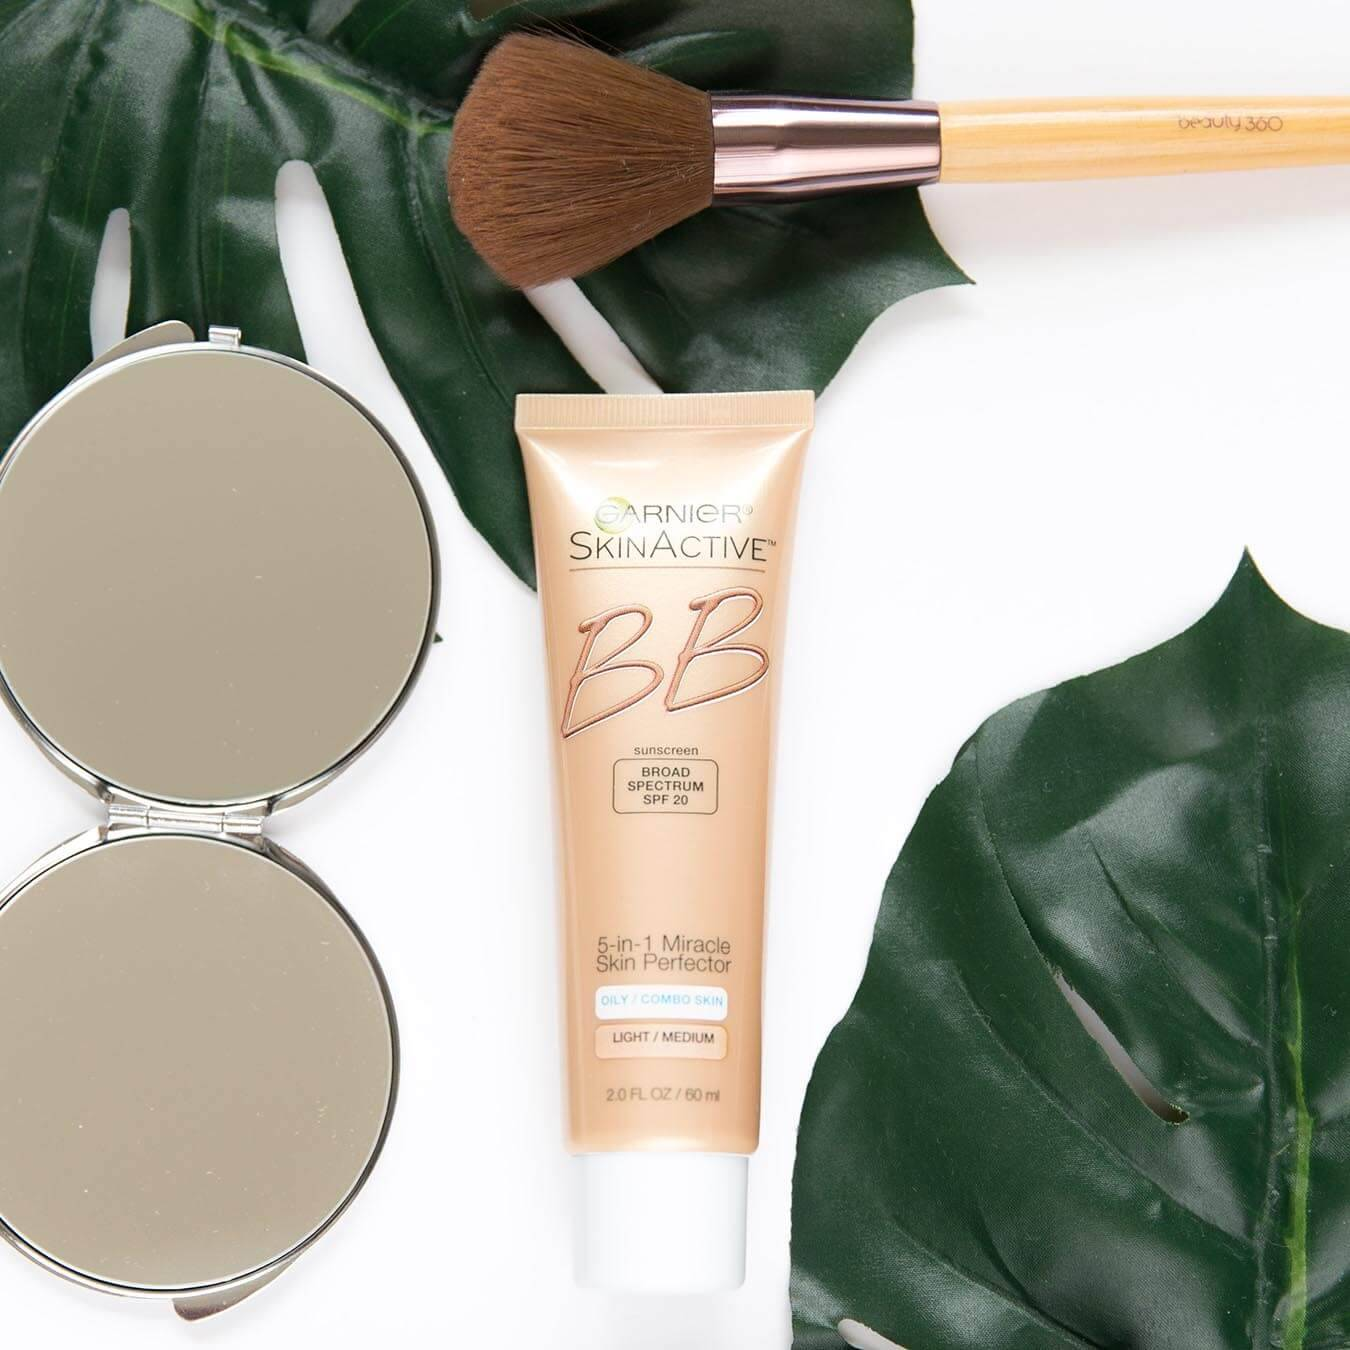 Garnier SkinActive BB Broad Spectrum SPF 20 5-in-1 Miracle Skin Perfector for Light/Medium on a white background next to two palm fronds, thick makeup brush, and a folding mirror.